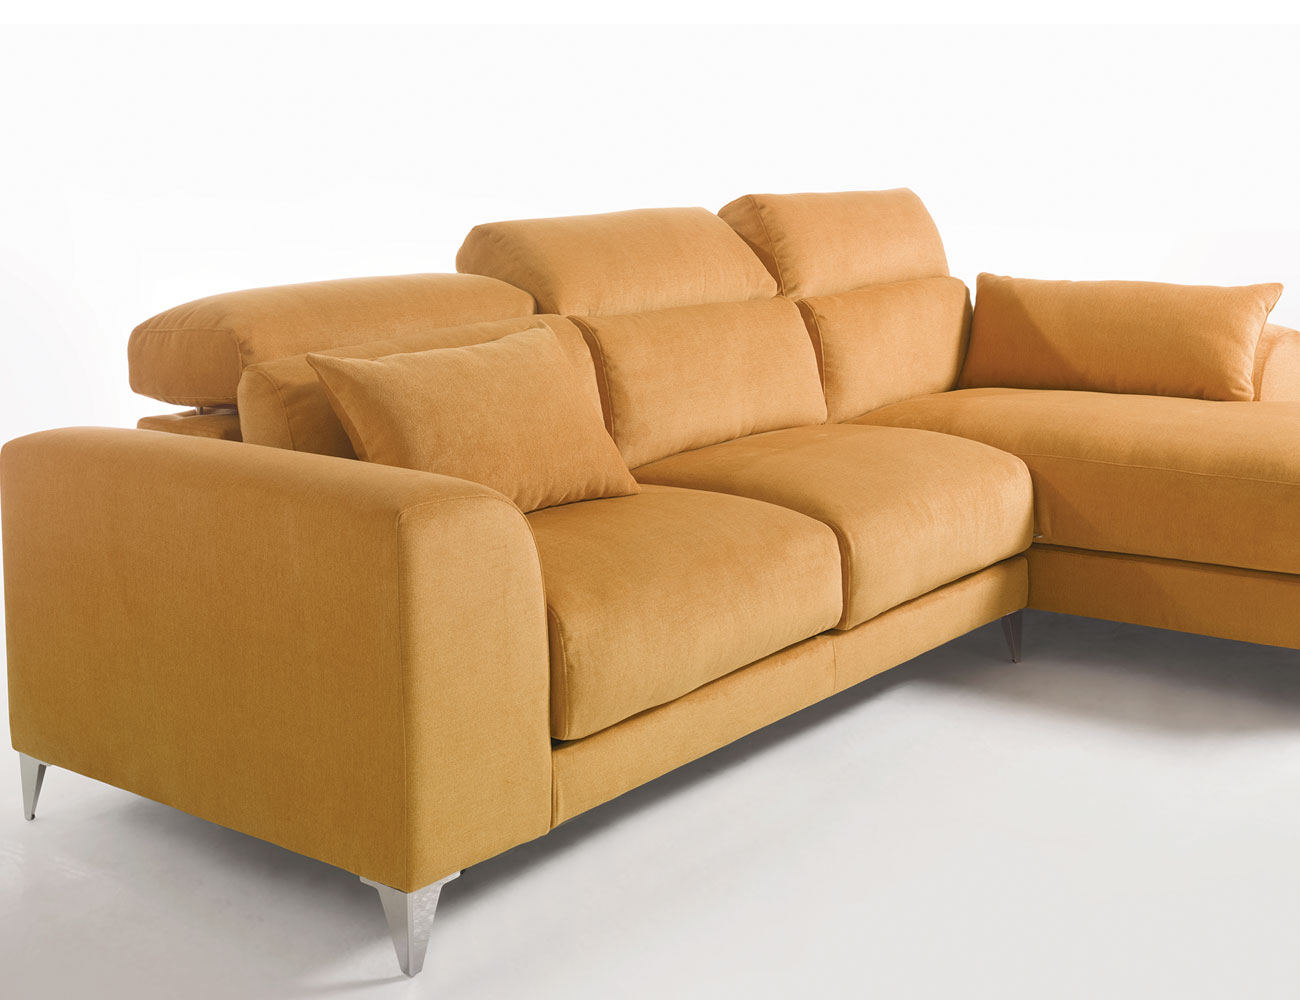 Sofa chaiselongue gran lujo decorativo patas altas amarillo 246